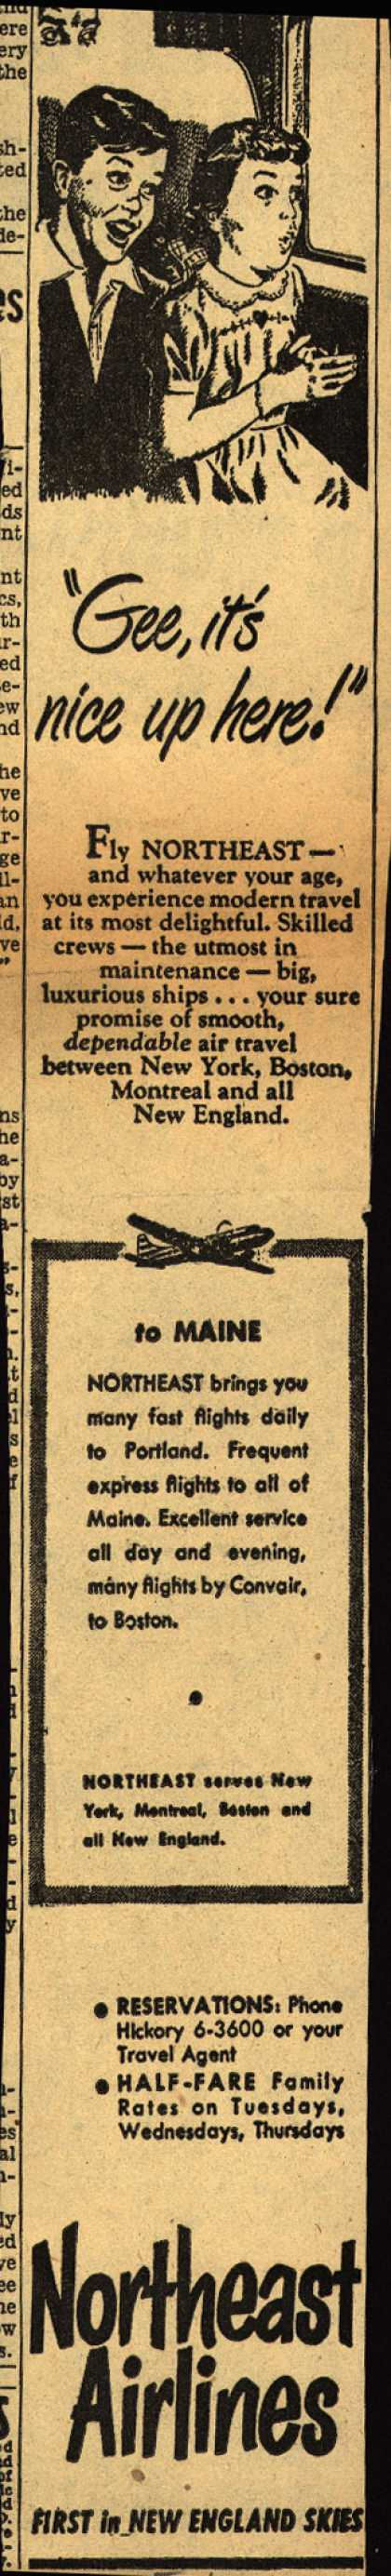 "Northeast Airline's Maine – ""Gee, it's nice up here!"" (1952)"